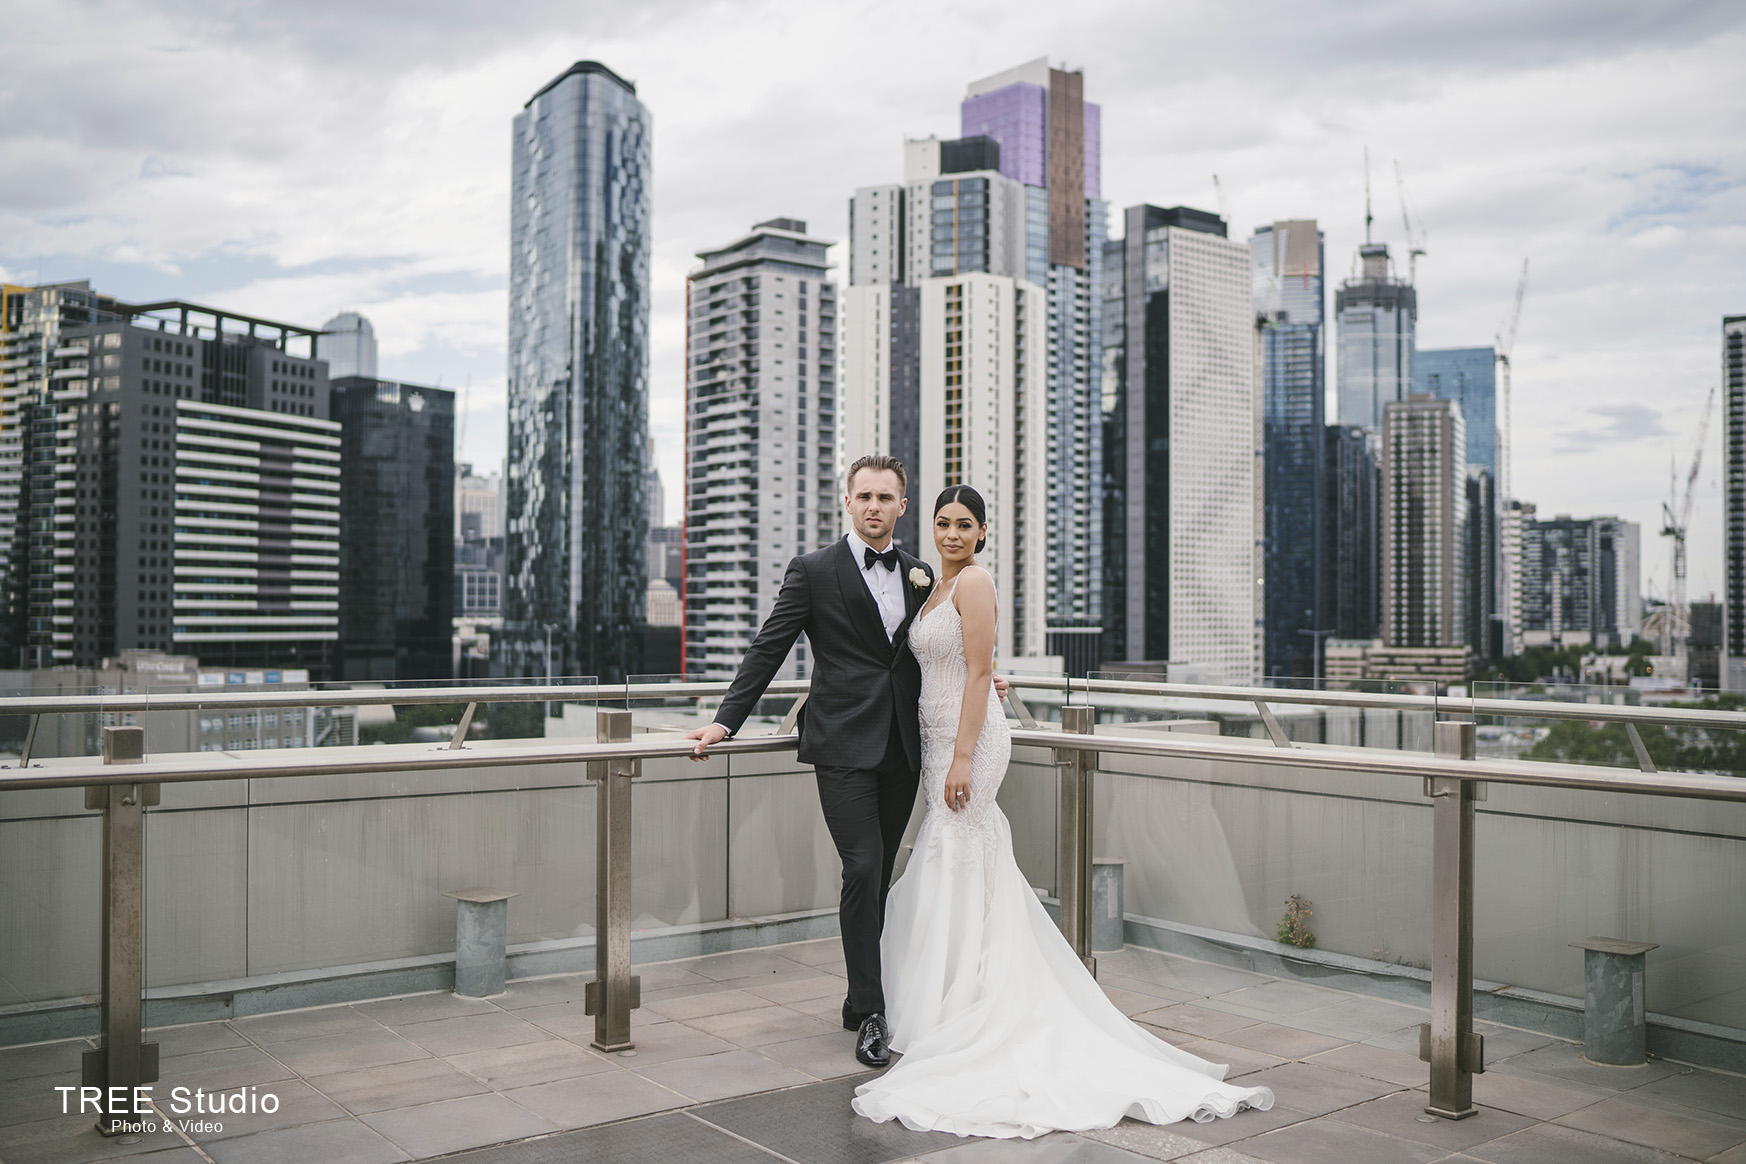 Dazzling Wedding Photography Melbourne preserves those intimate moments